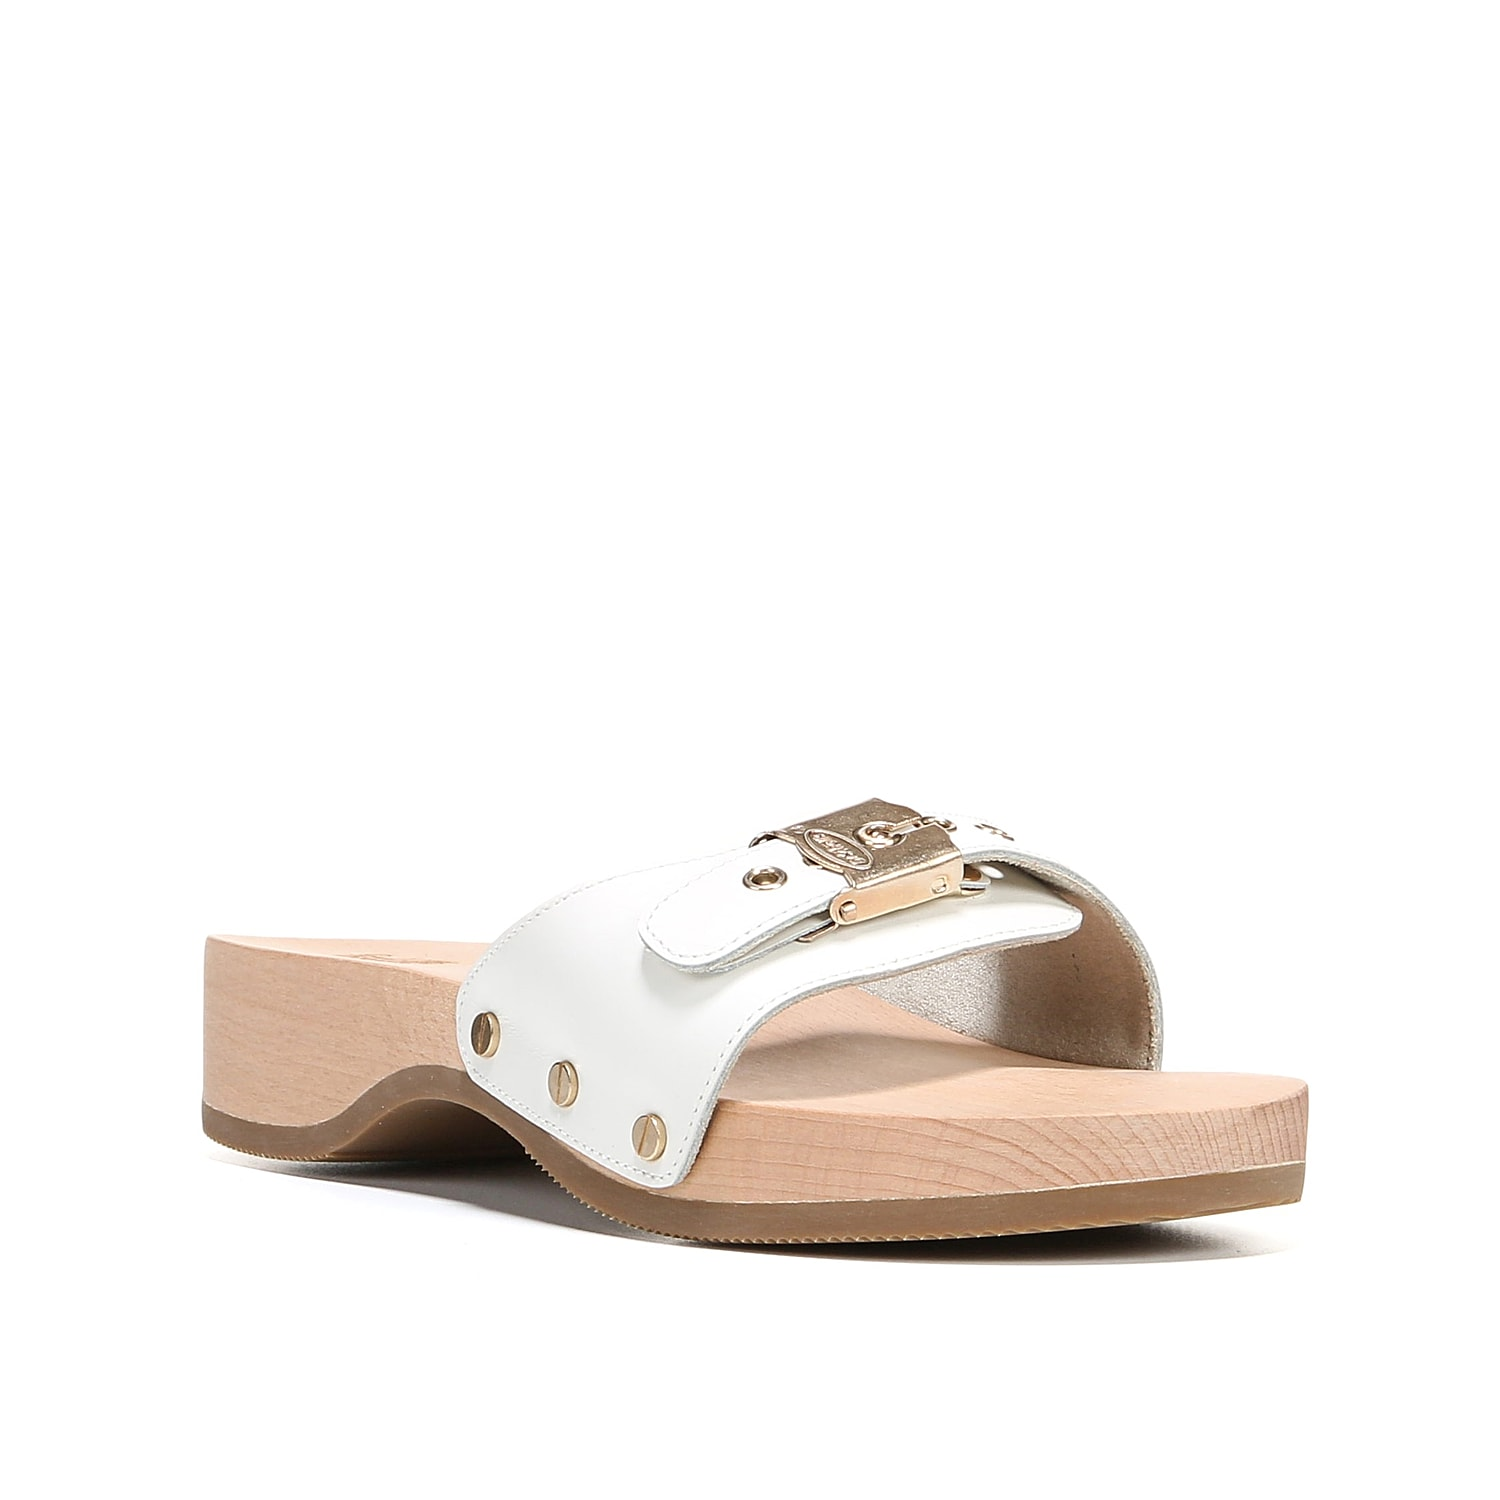 Stay classy in any outfit with the Original sandal from Dr. Scholl\\\'s. Stud accents and an authentic wood heel adds a touch of retro style.